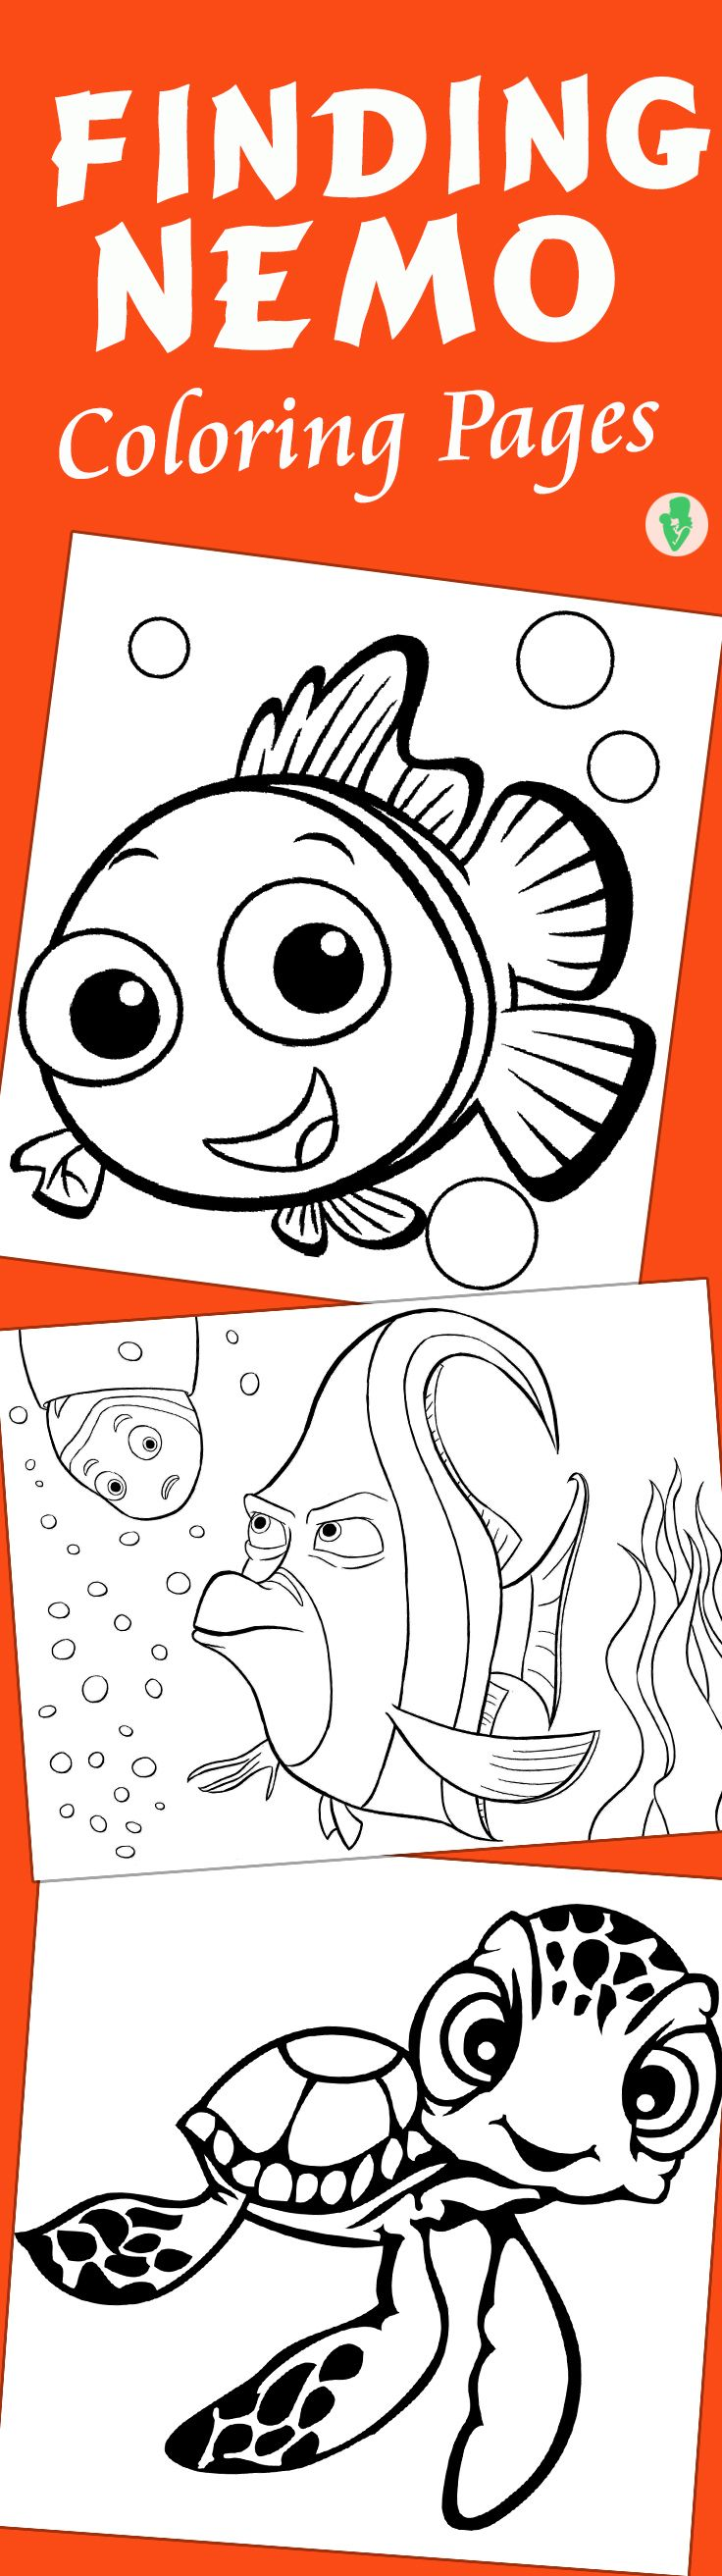 P 40 coloring pages - 40 Finding Nemo Coloring Pages Free Printables